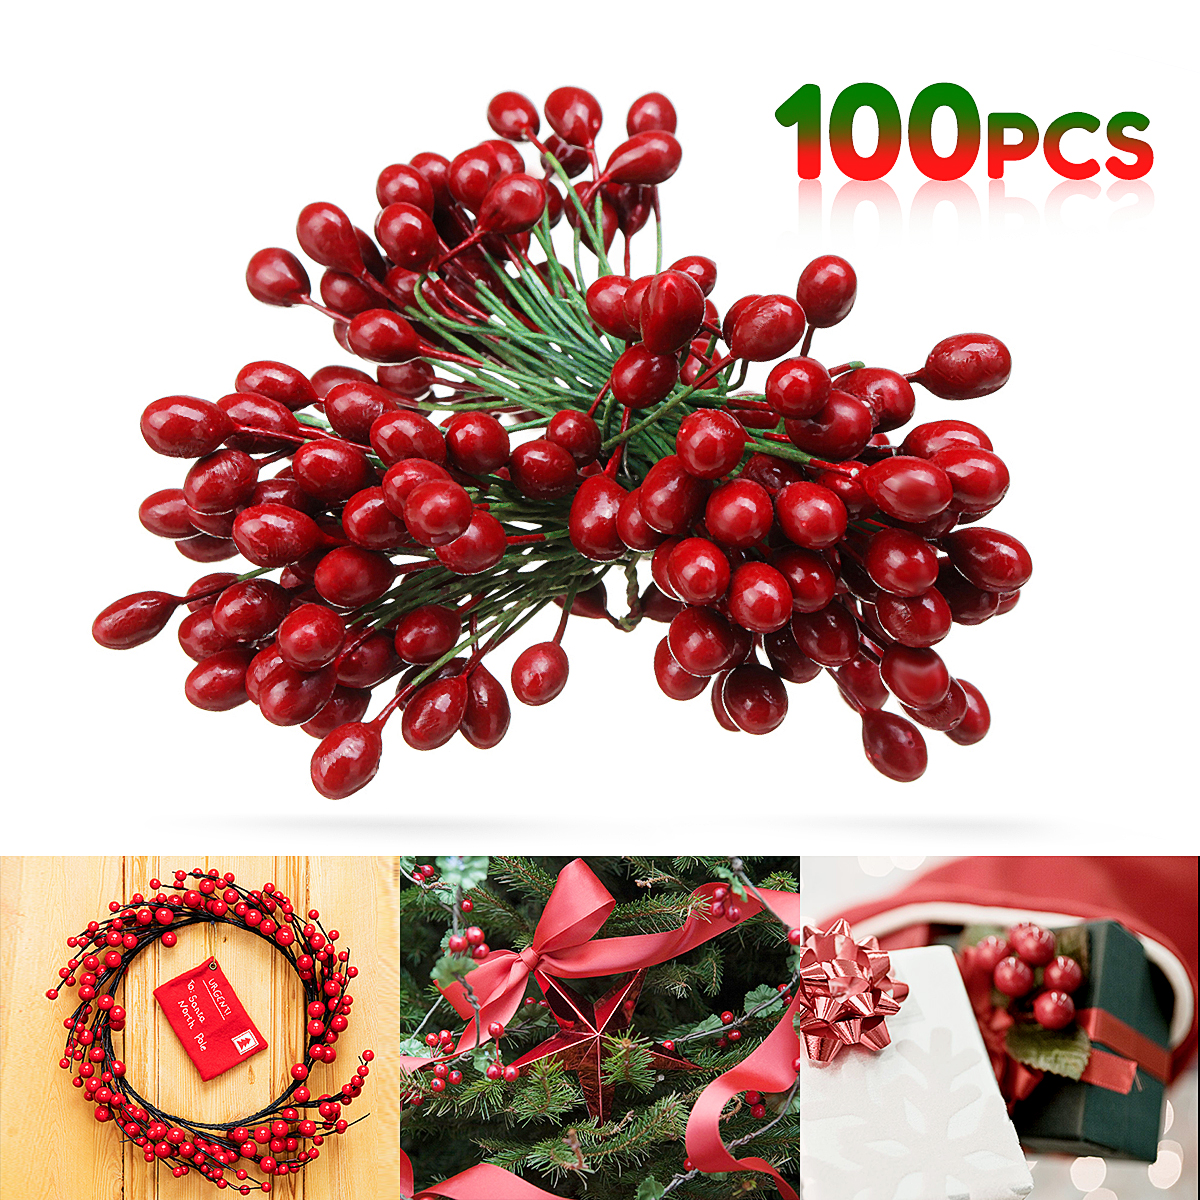 Hot Sale 100pcs Artificial Red Holly Berry Berries 8mm Home Garland